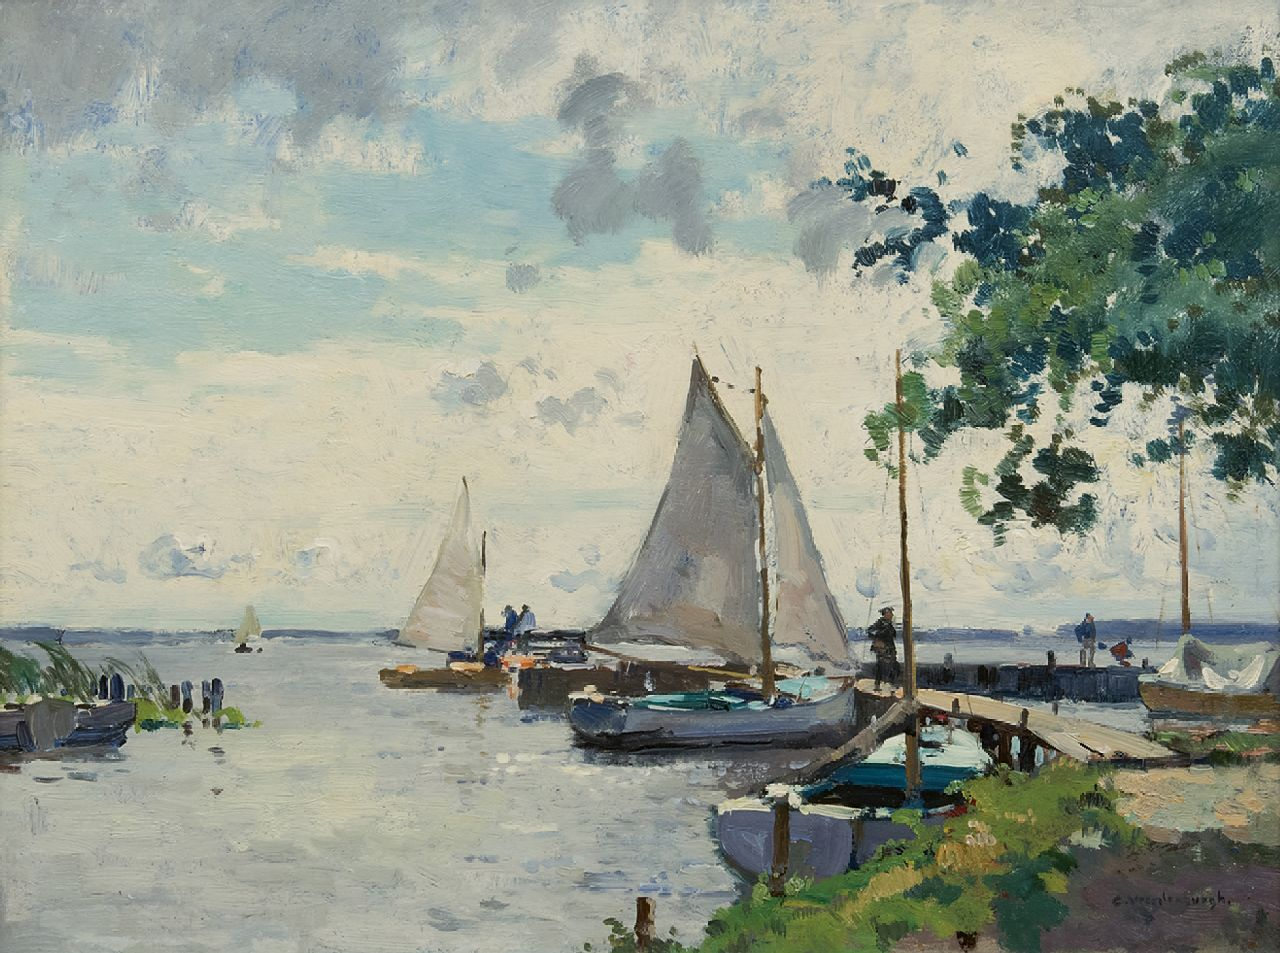 Vreedenburgh C.  | Cornelis Vreedenburgh | Paintings offered for sale | Sailing boats at a jetty on the Loosdrechtse Plassen, oil on board 34.7 x 46.1 cm, signed l.r.